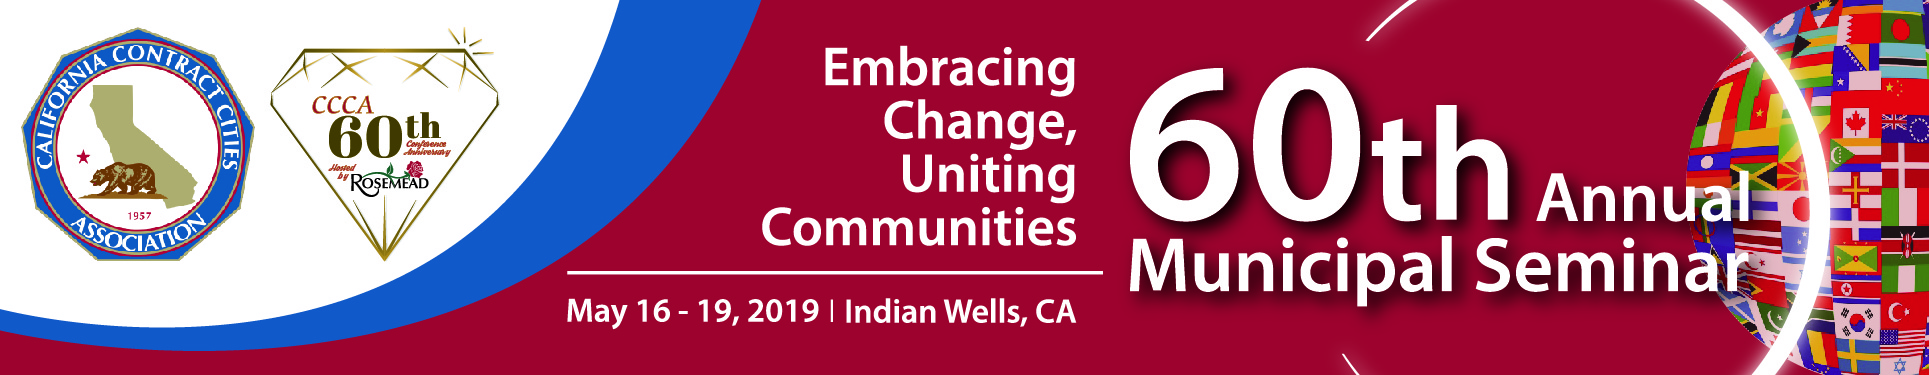 California Contract Cities 60th Annual Municipal Seminar: Embracing Change, Uniting Communities